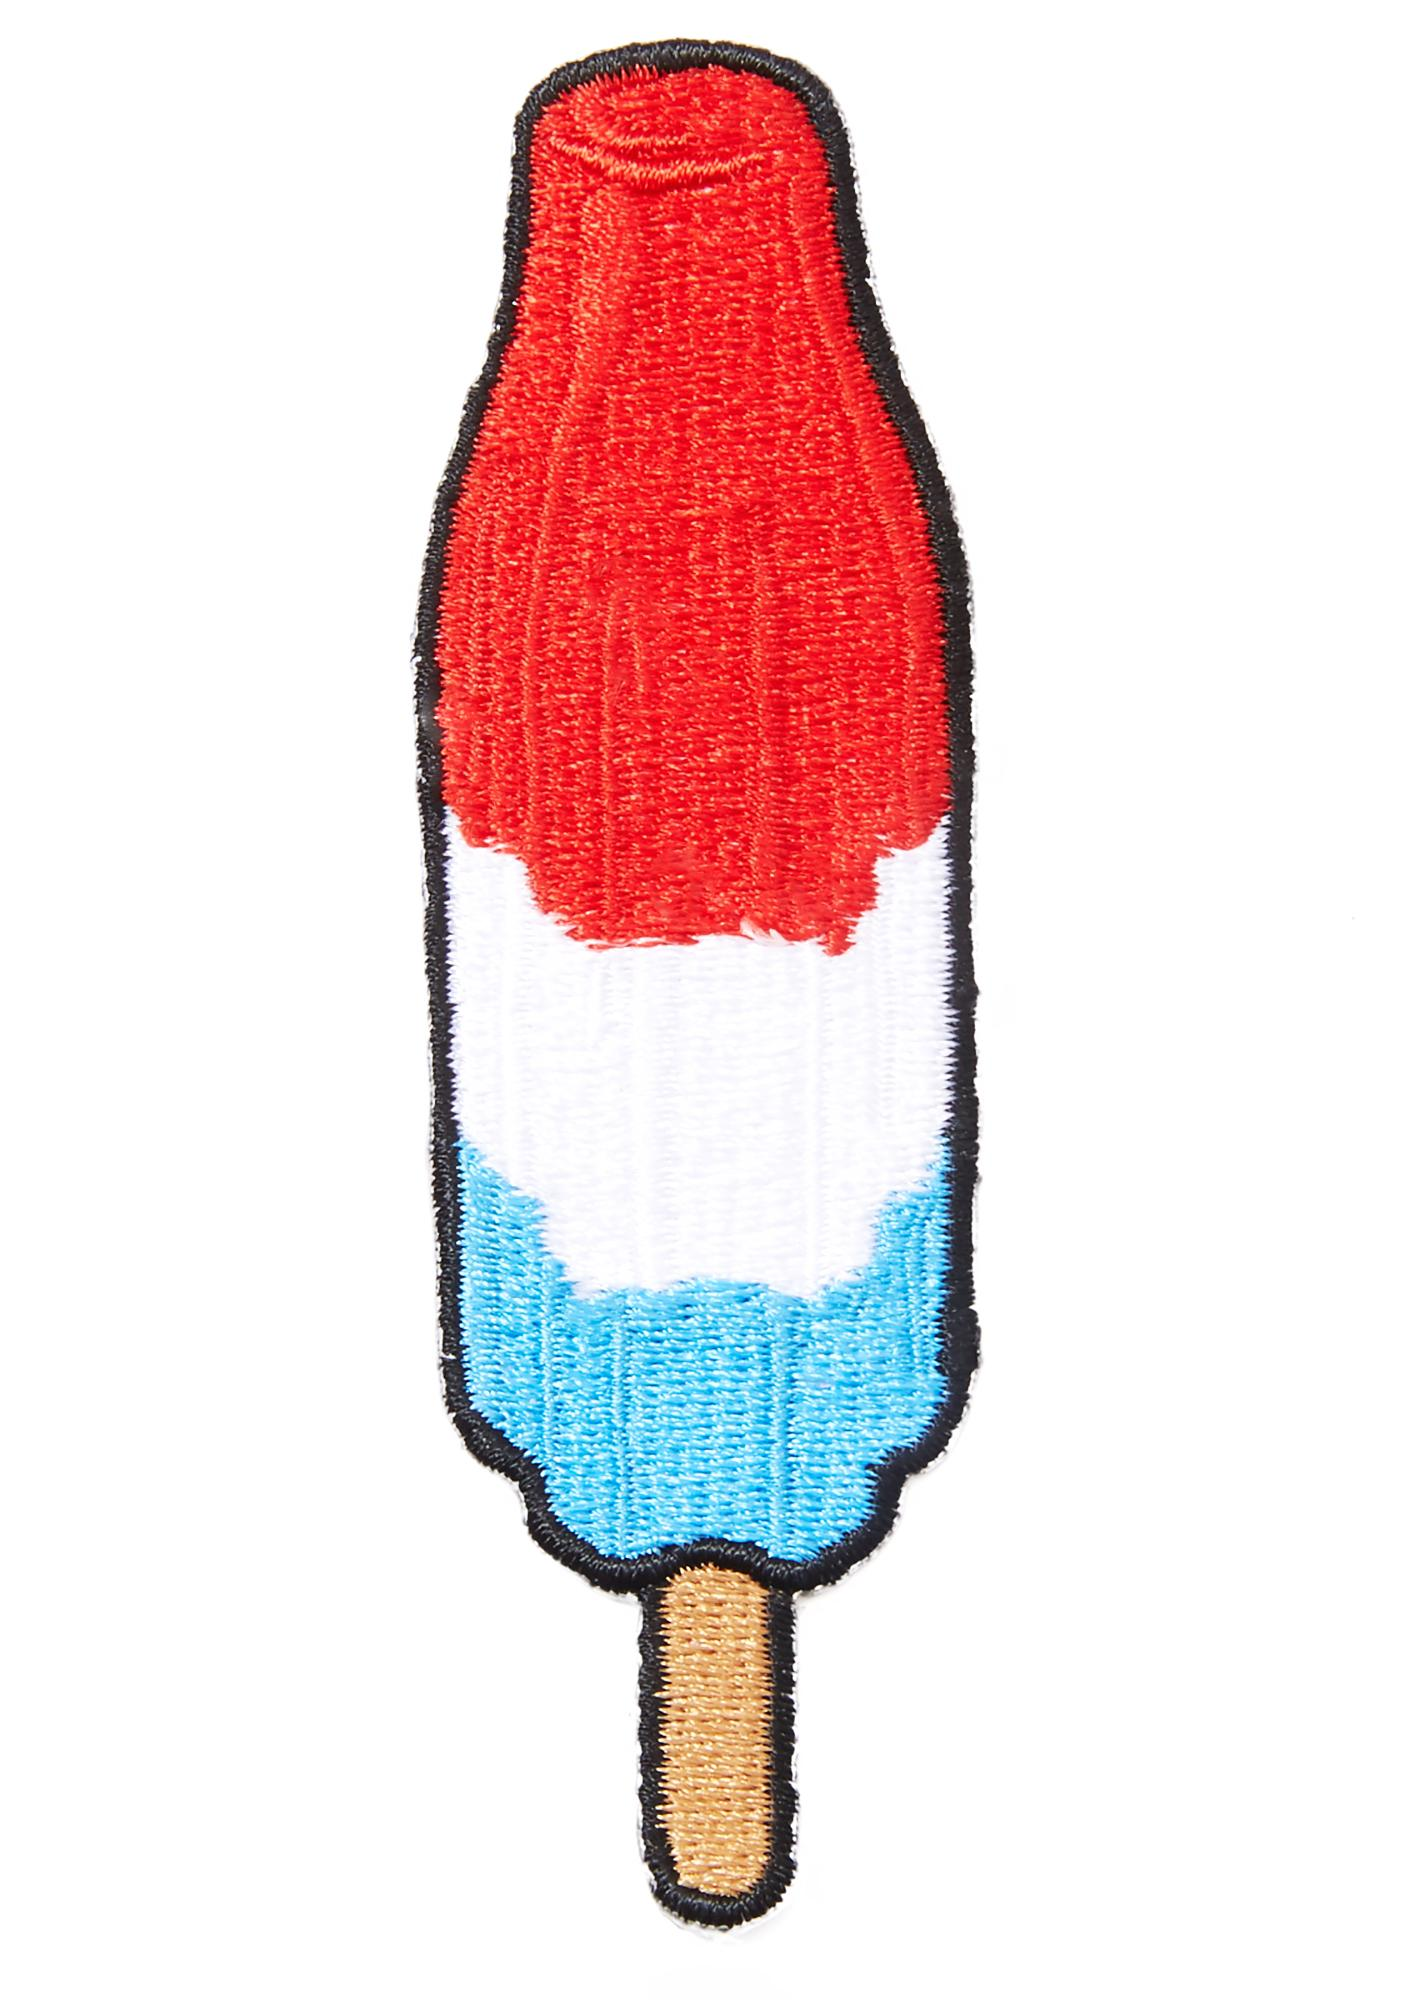 Cool Down Popsicle Patch